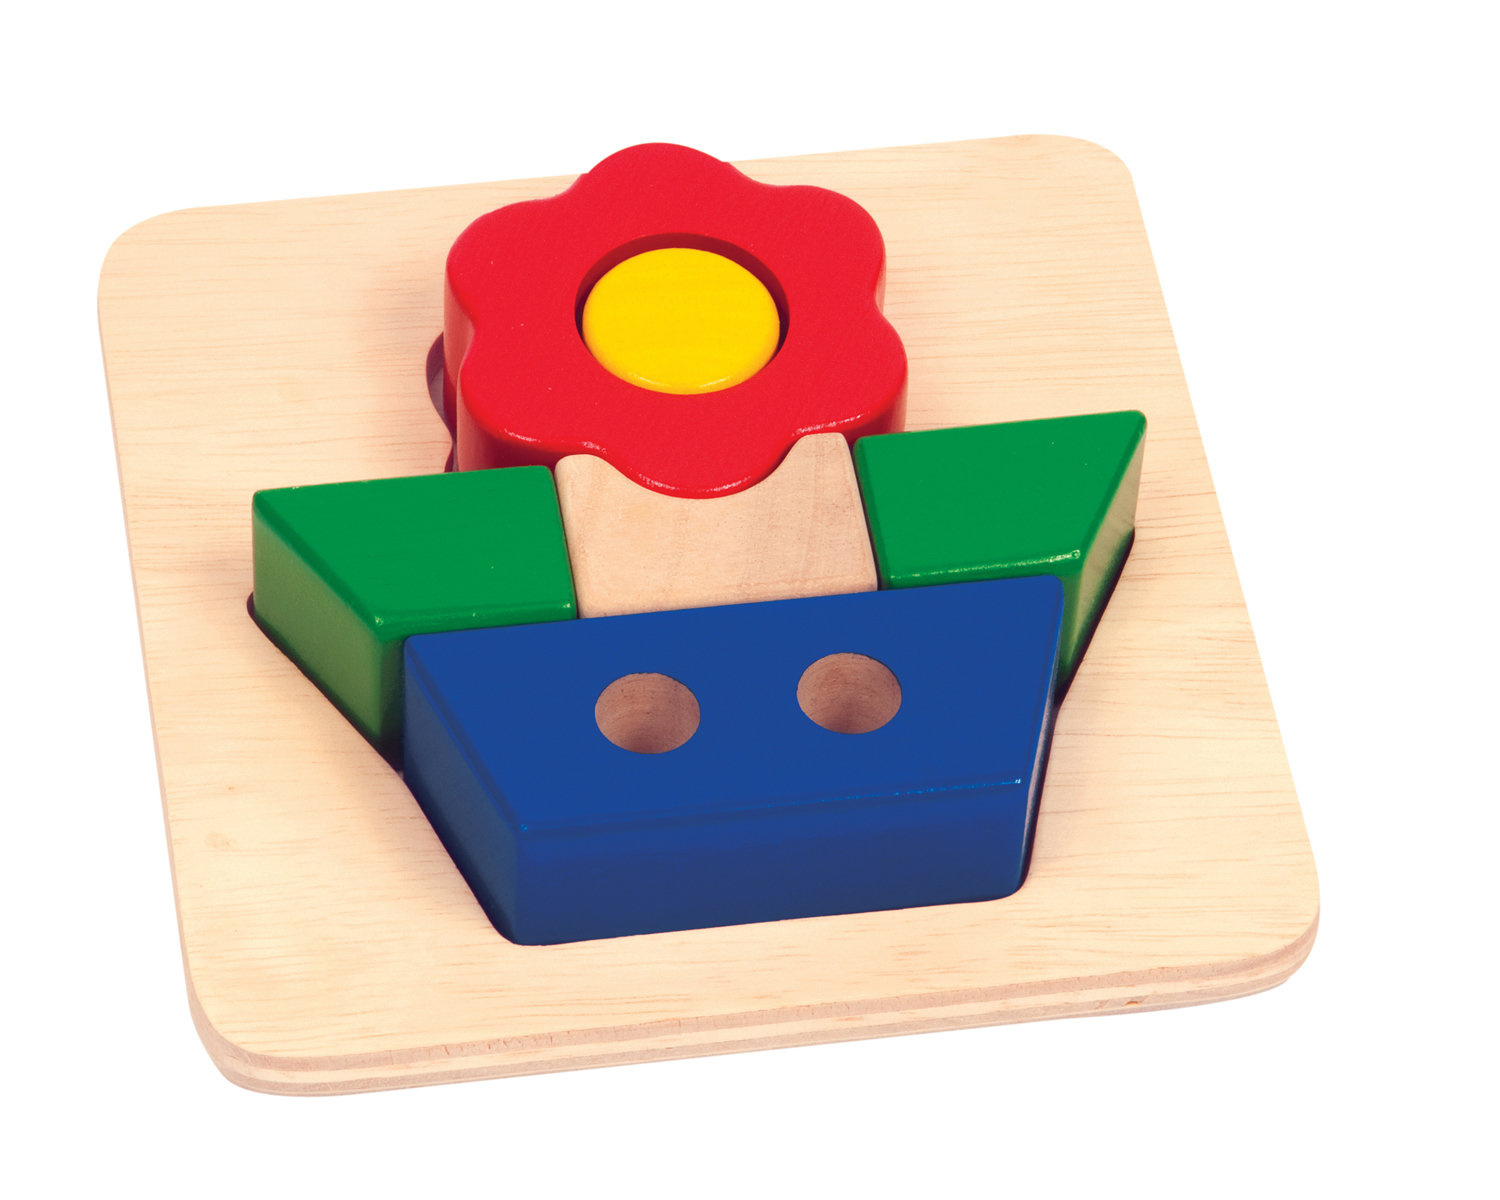 Guidecraft Primary Puzzle - Flower at Sears.com